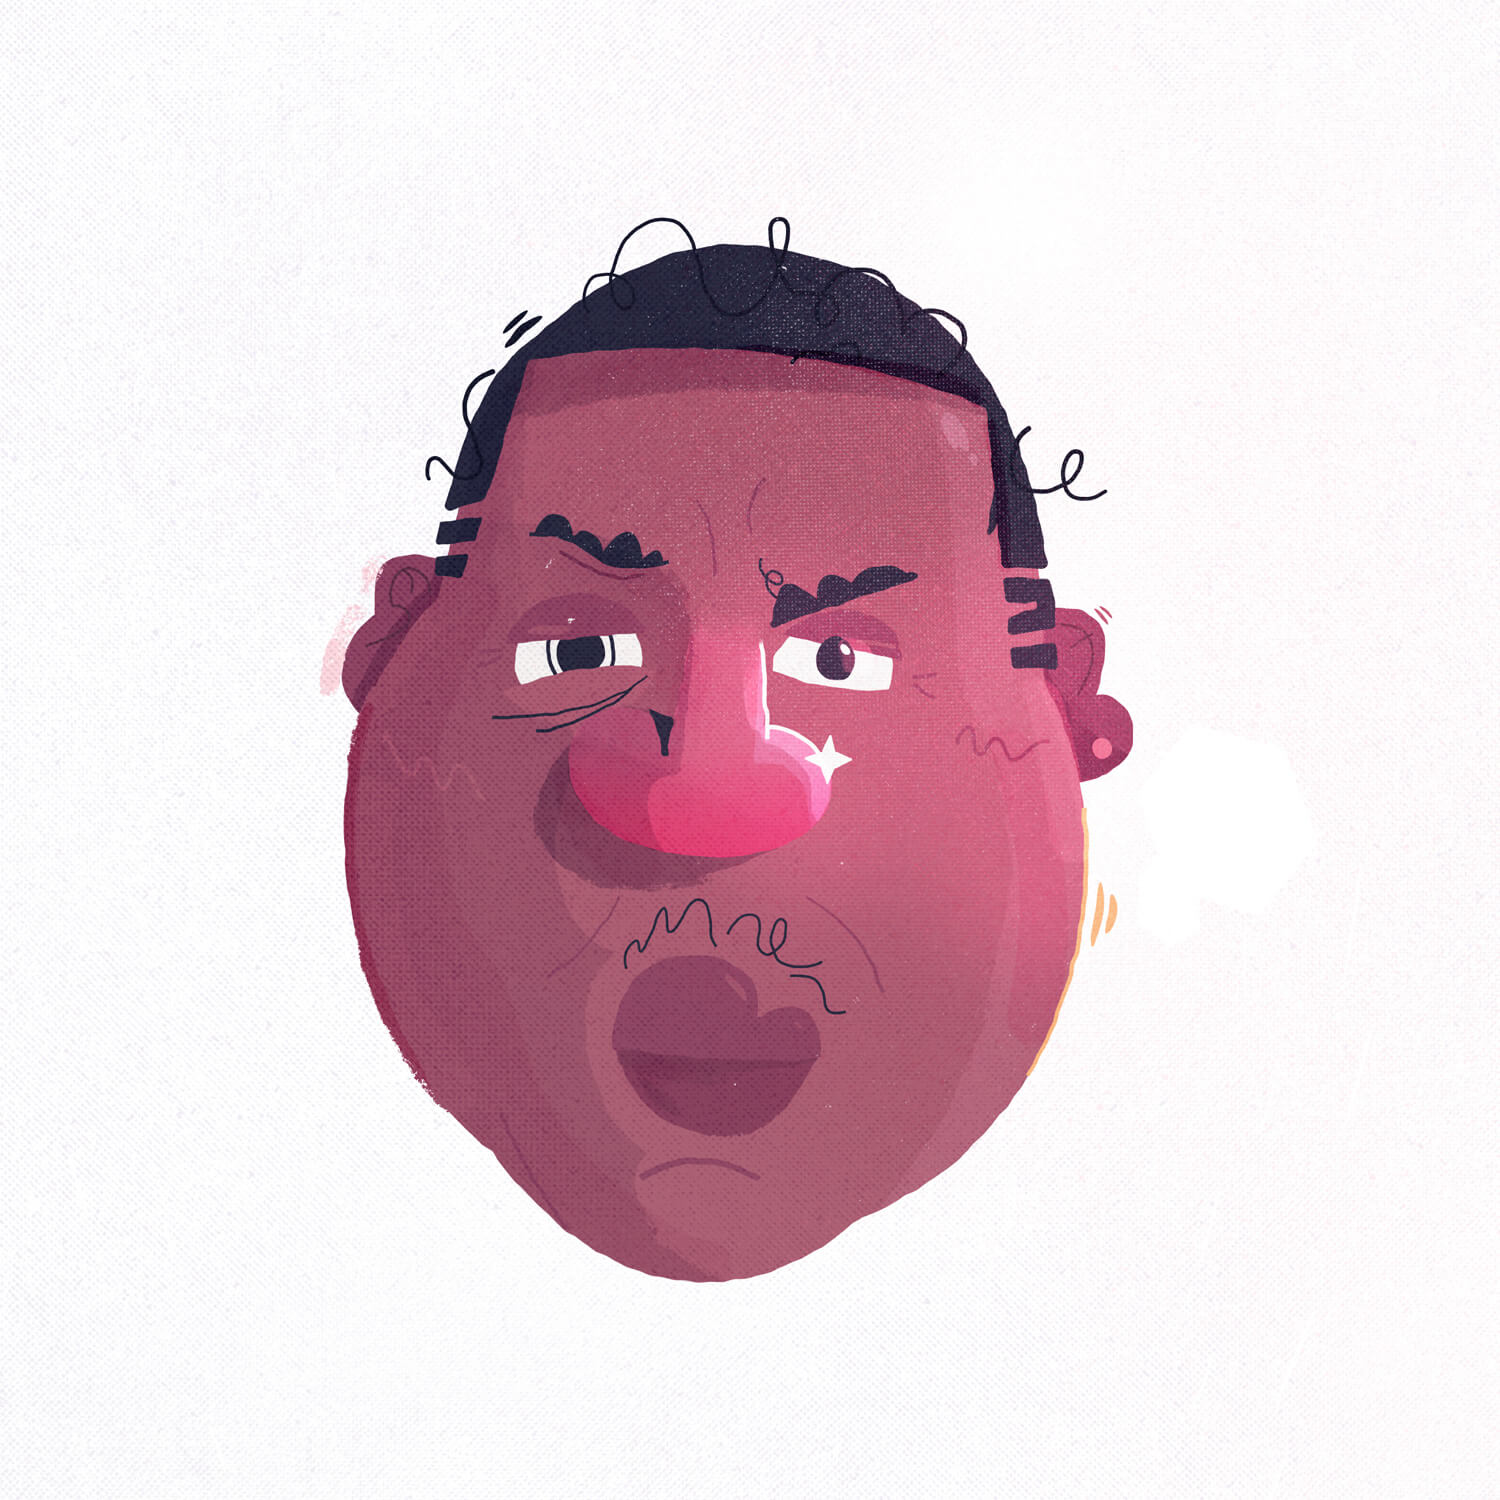 biggie-thanks-process-16.jpg